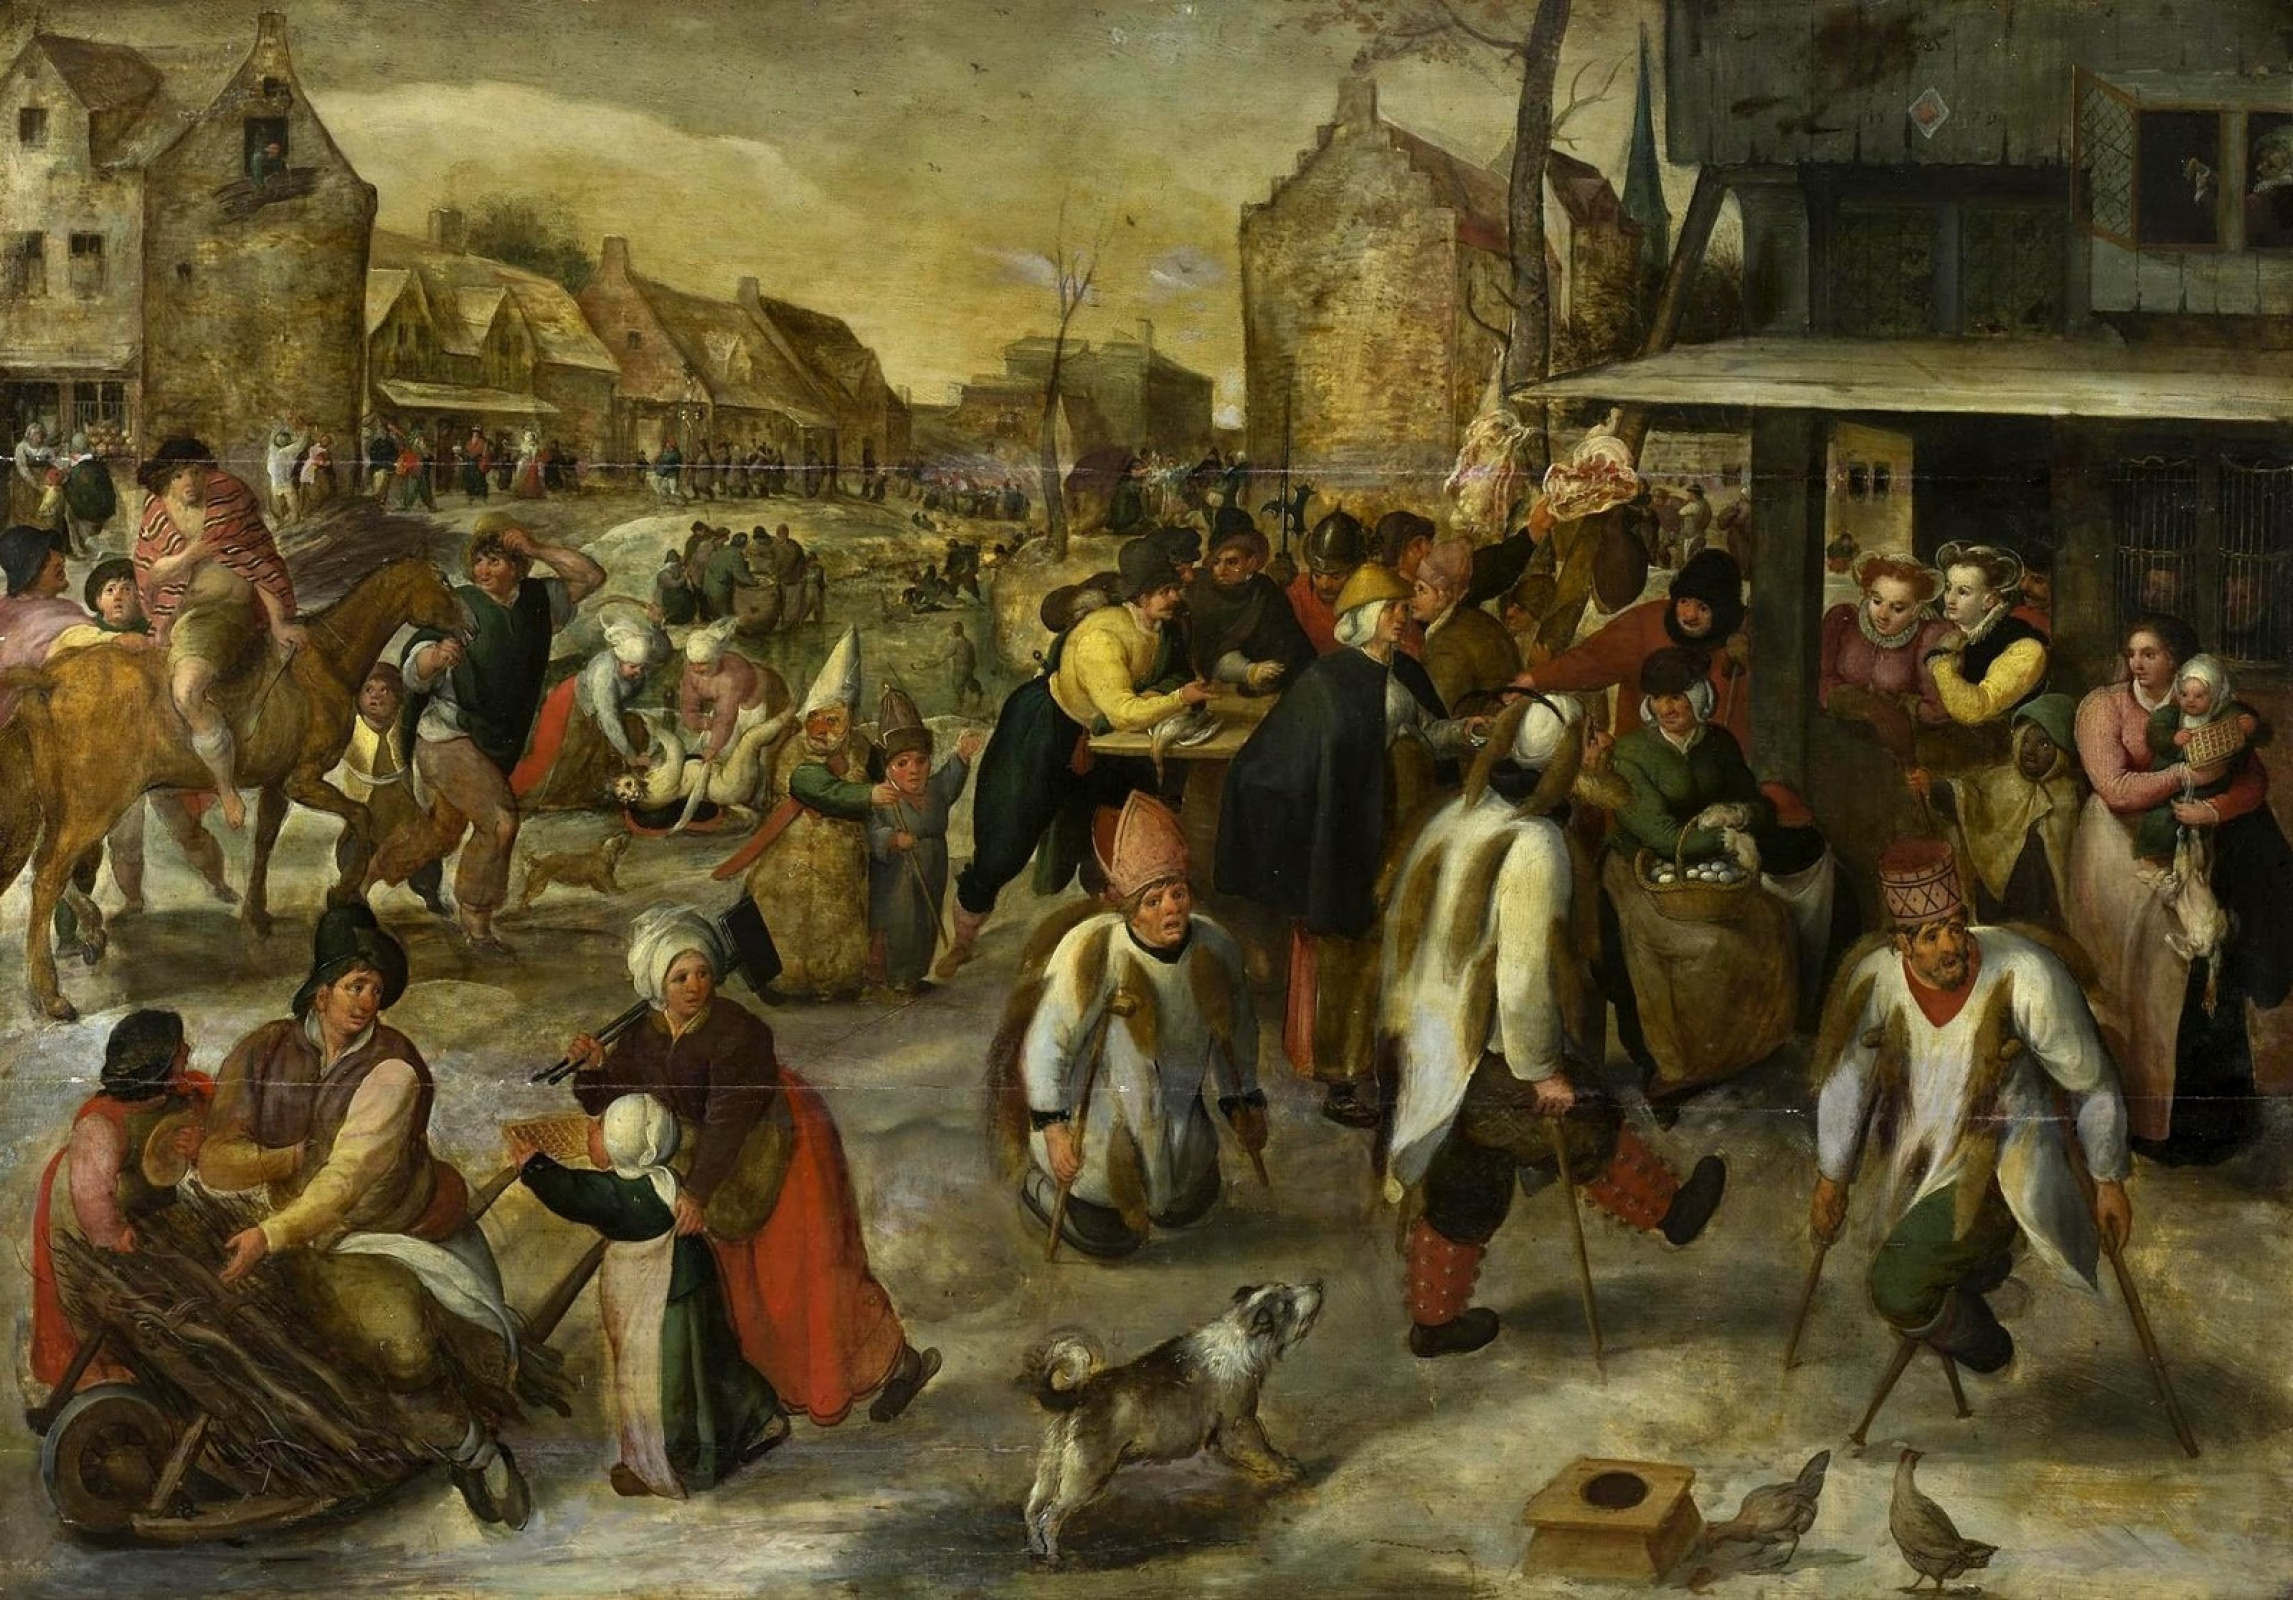 Carnival in the village by Martin van Cleve: History, Analysis & Facts